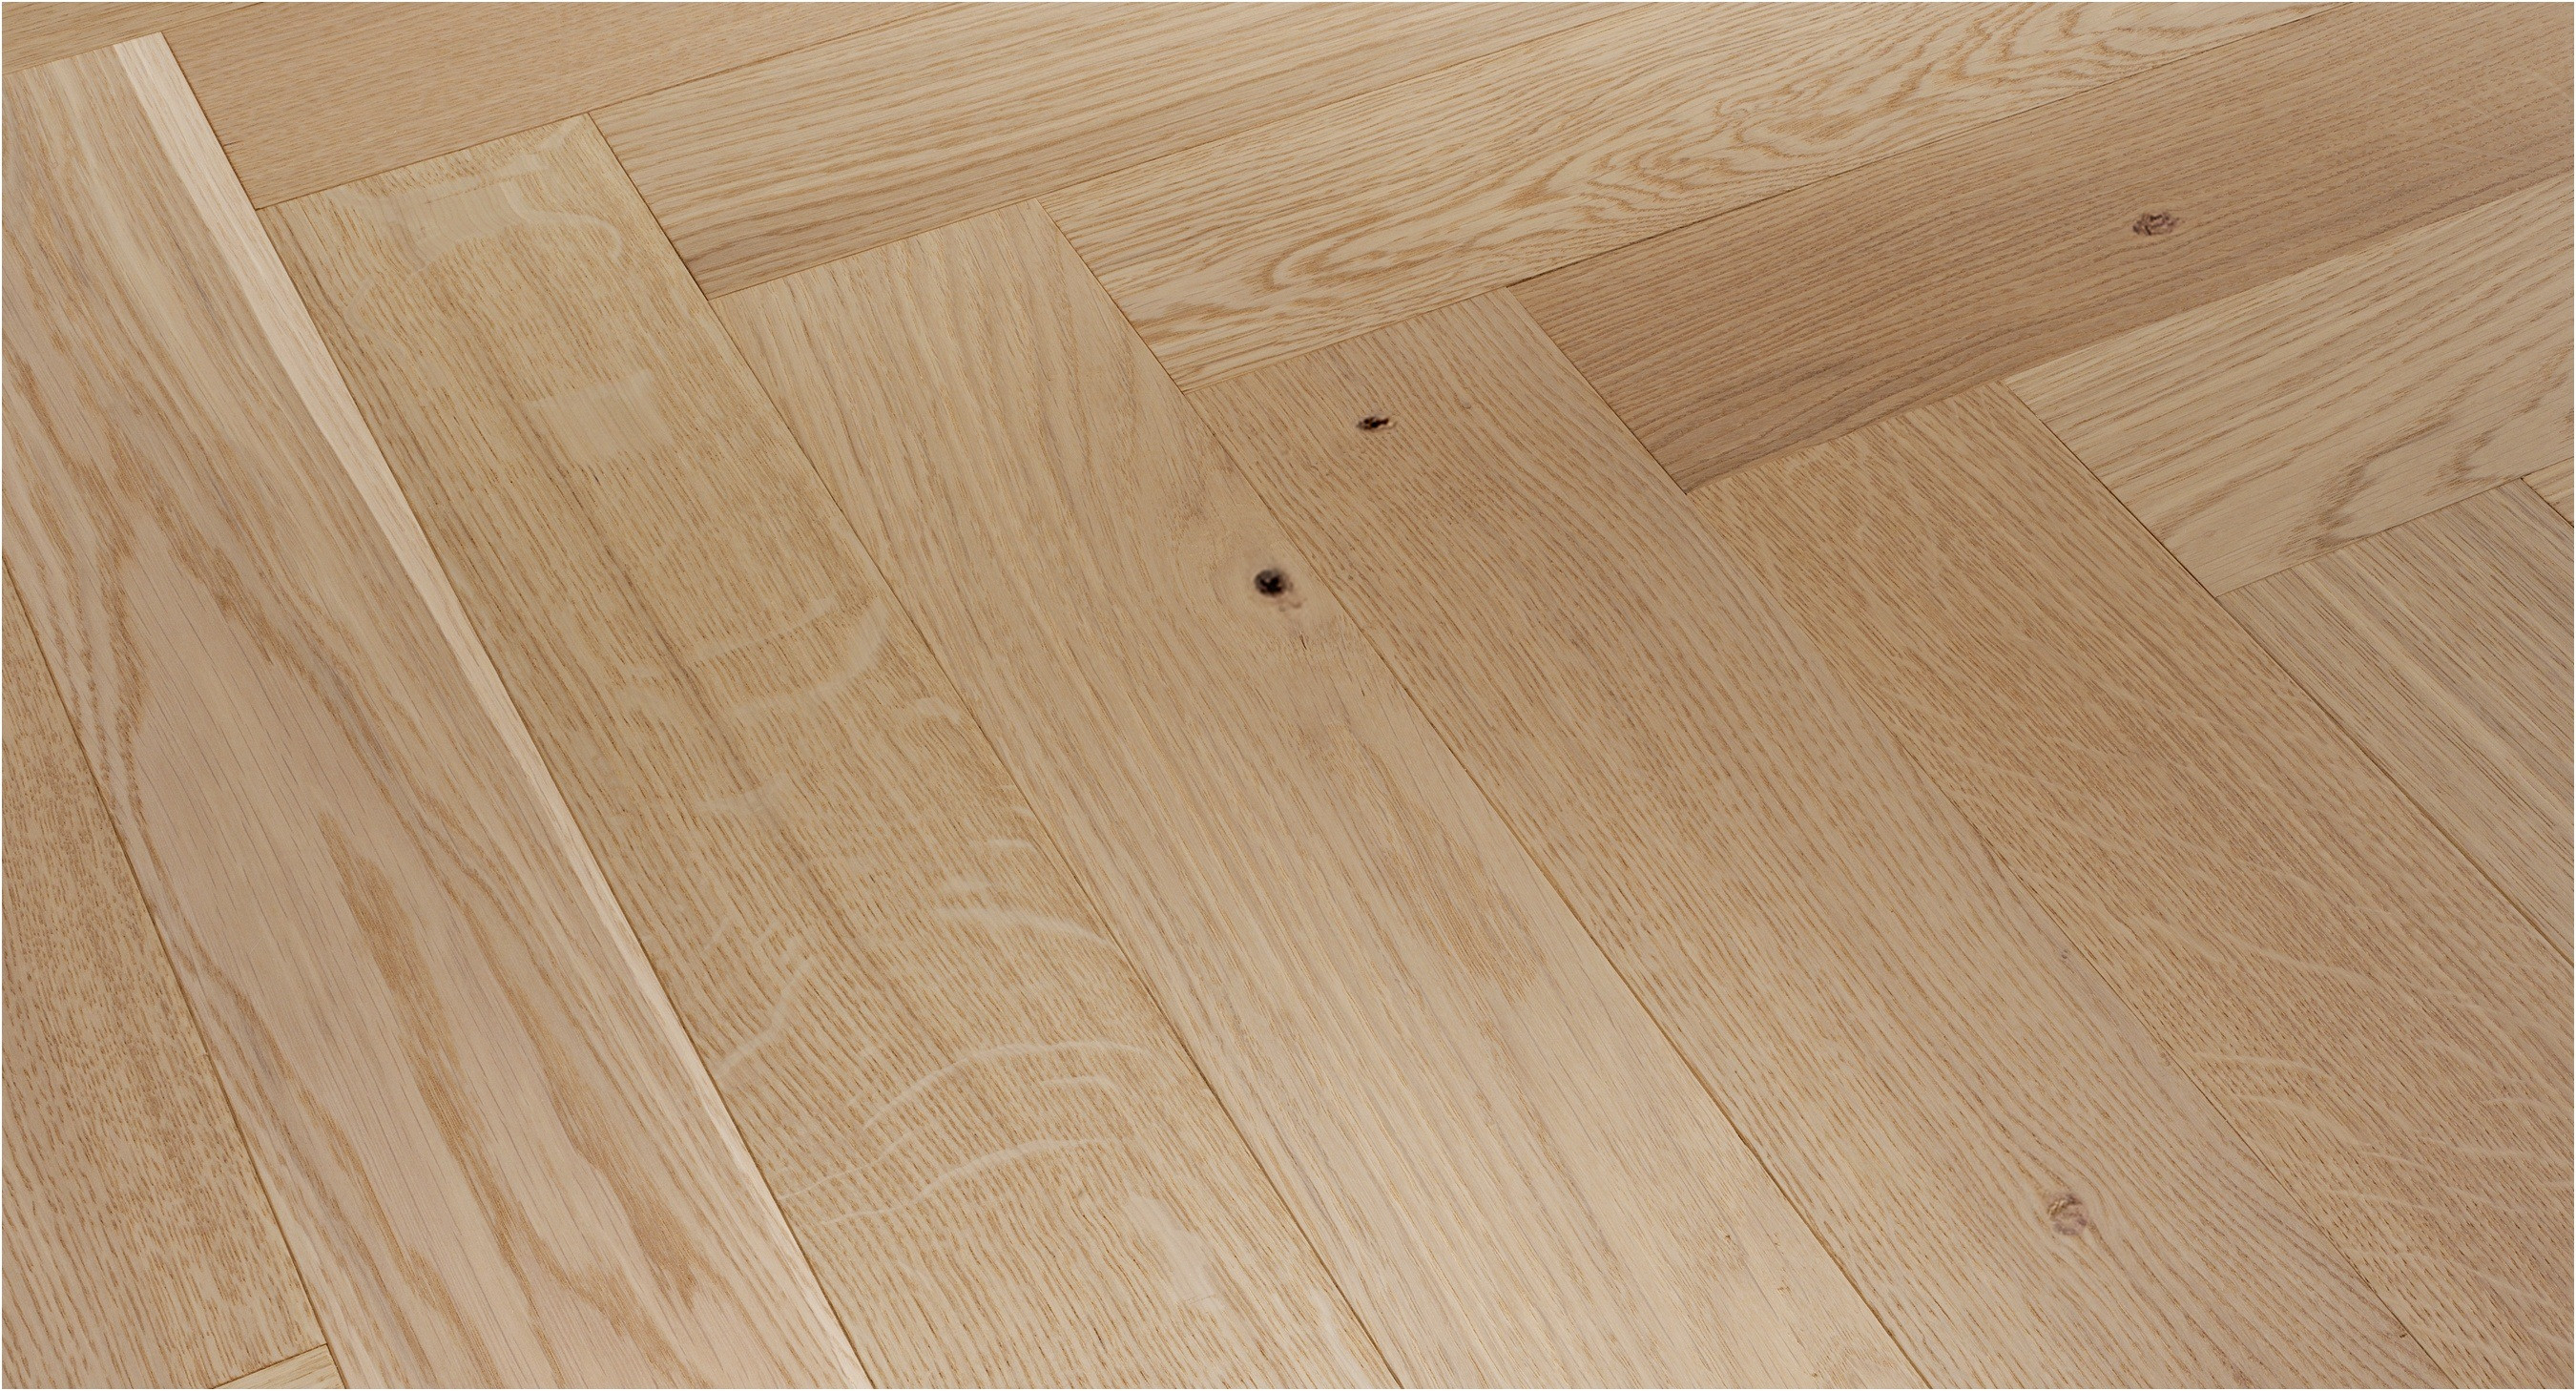 kent hardwood flooring of 30 inspirational laminate flooring transition photos flooring intended for laminate flooring transition luxury the flooring place best place for laminate flooring stock 0d grace pictures